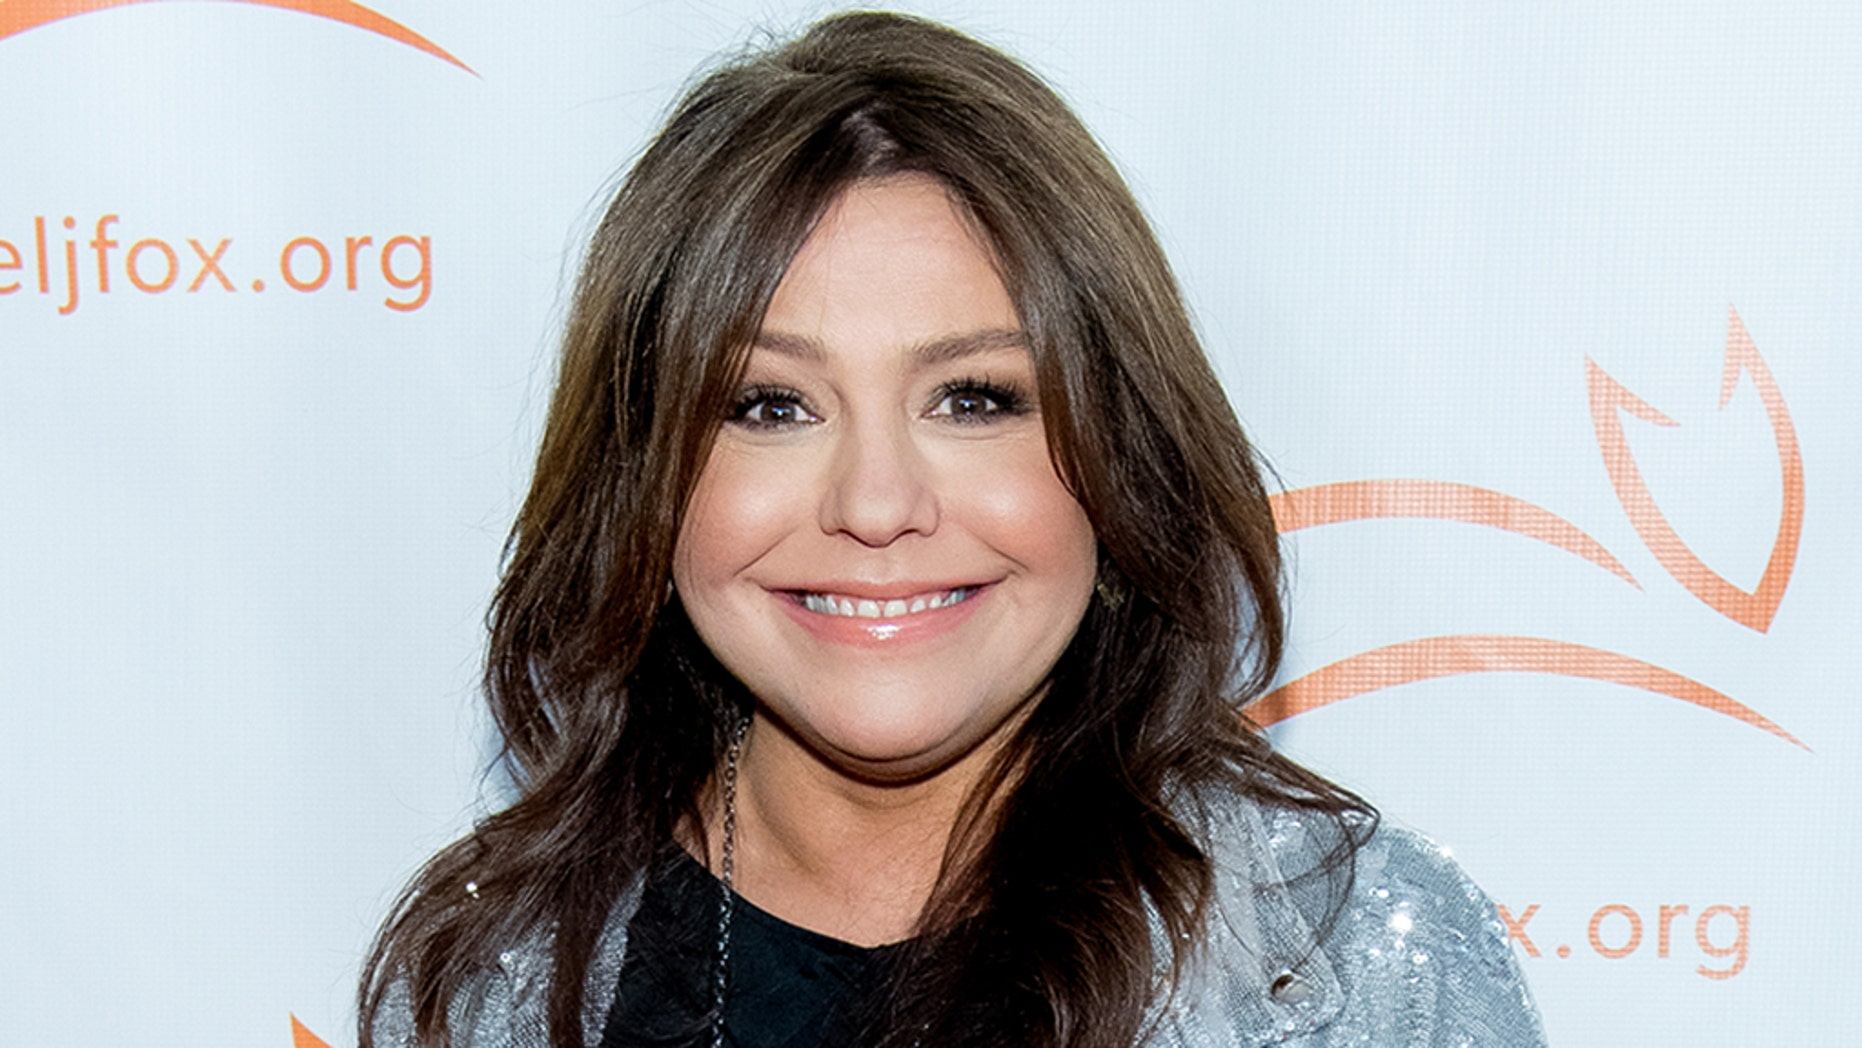 Rachael Ray's dog food brand, Nutrish, is reportedly being sued, according to multiple outlets. The plaintiff is reportedly alleging that the products, marketed as natural, contain a potentially harmful herbicide.